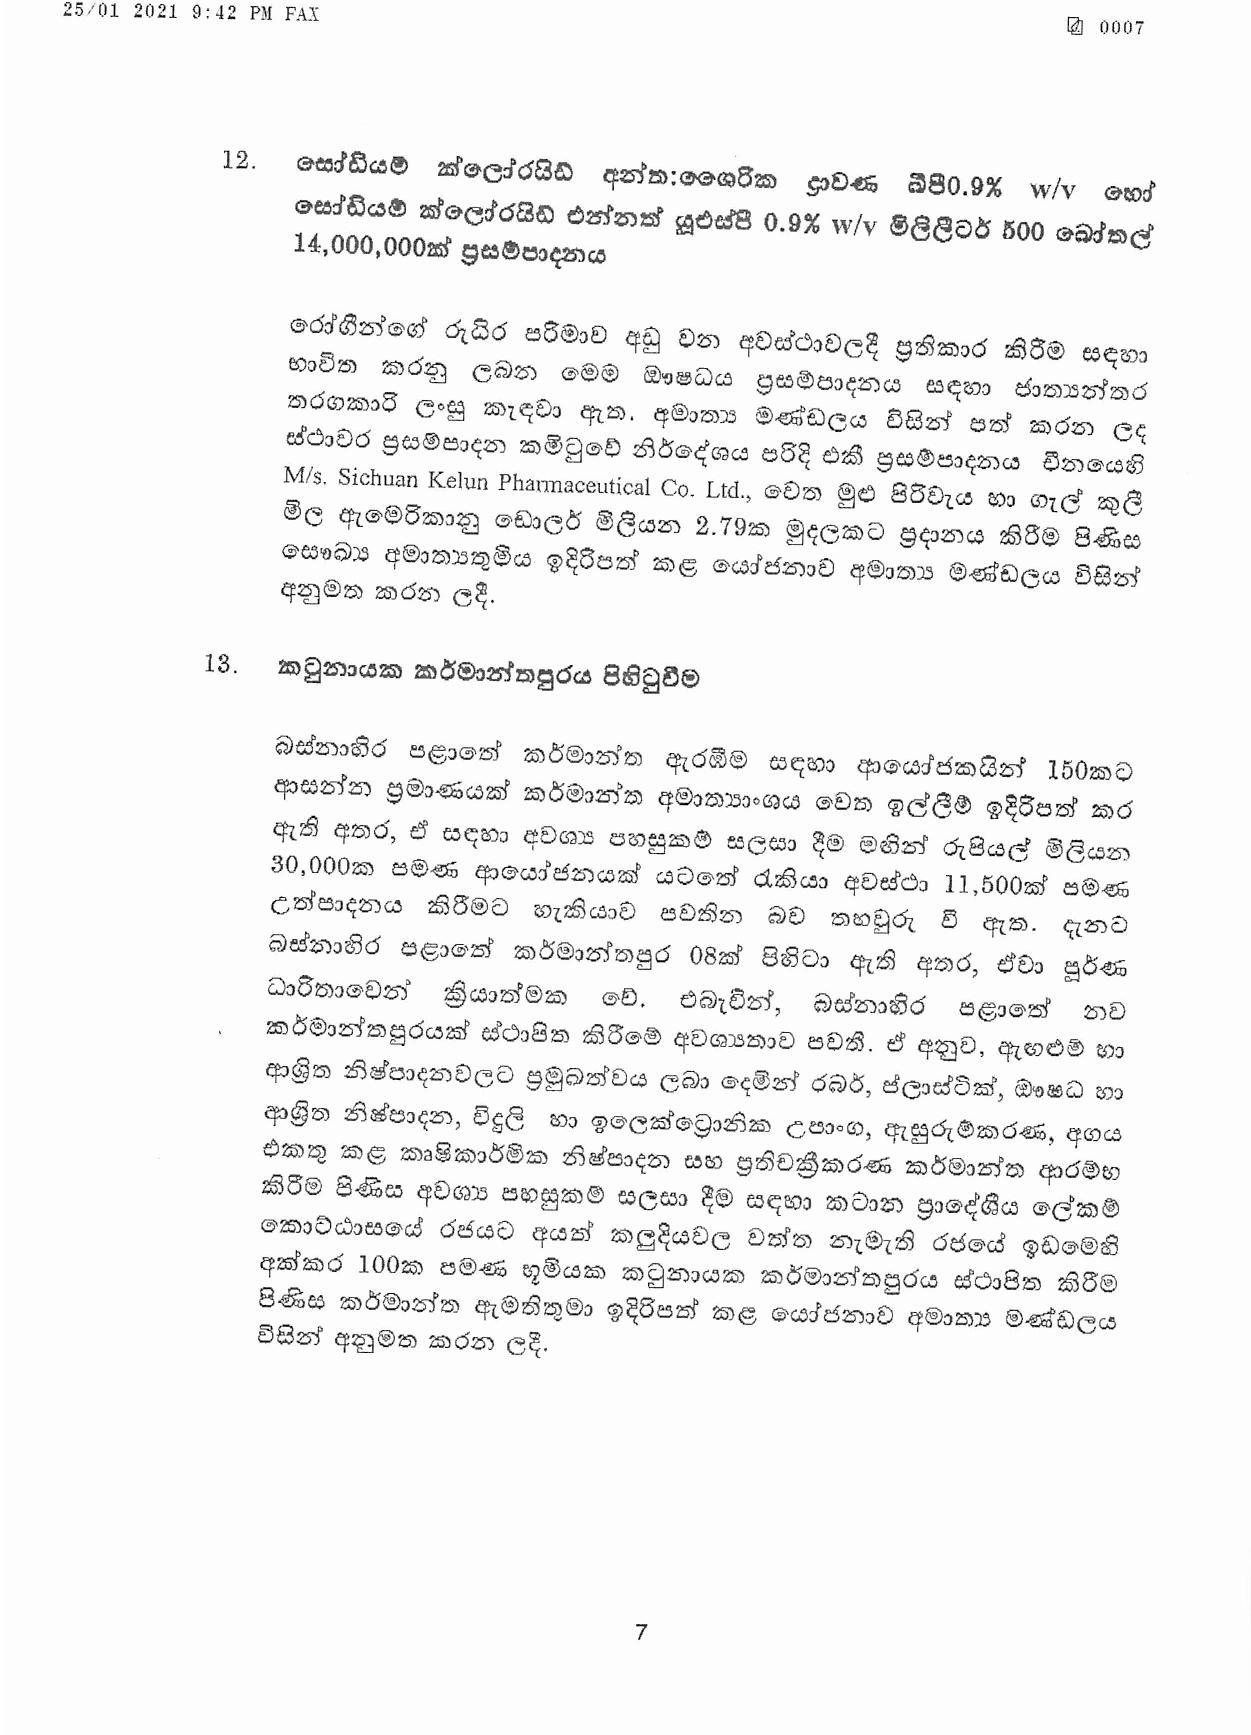 Cabinet Decision on 25.01.2021 page 007